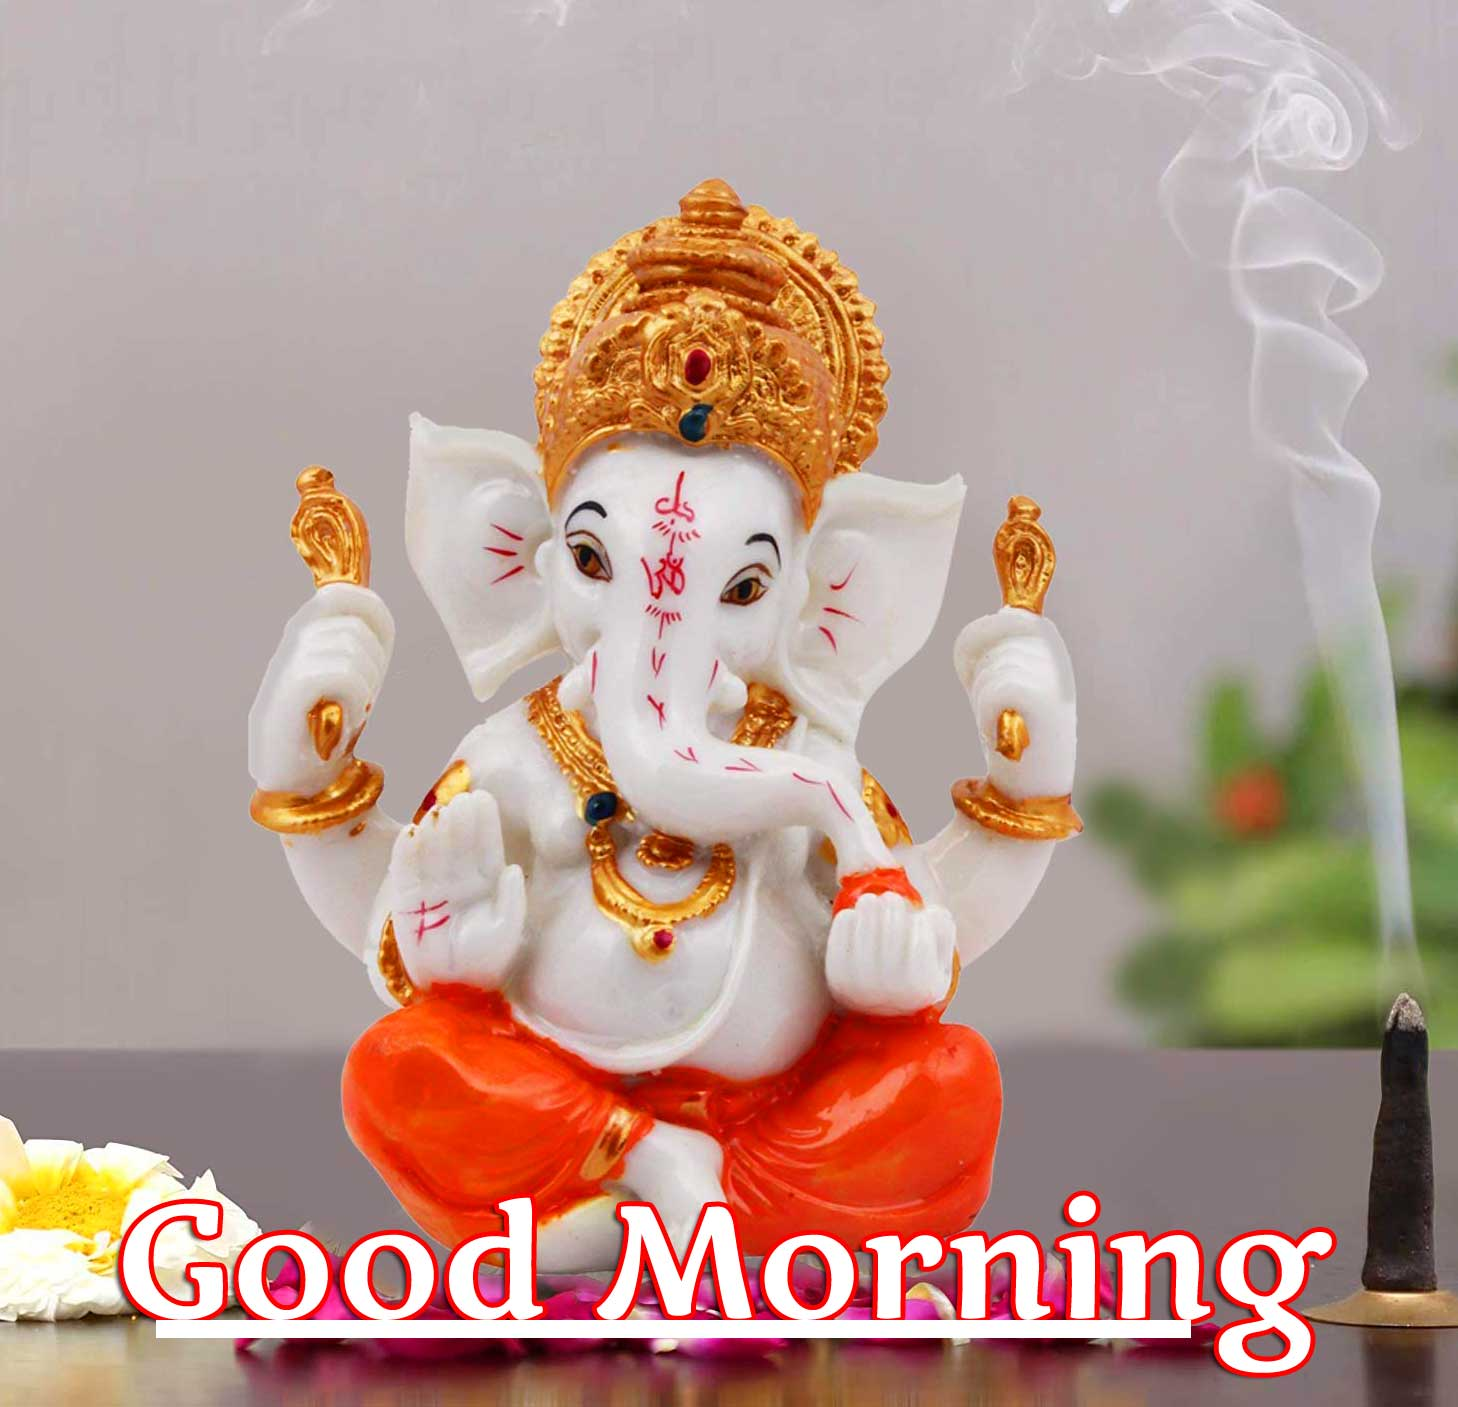 Good Morning Ganpati Bappa Wallpaper Free Download